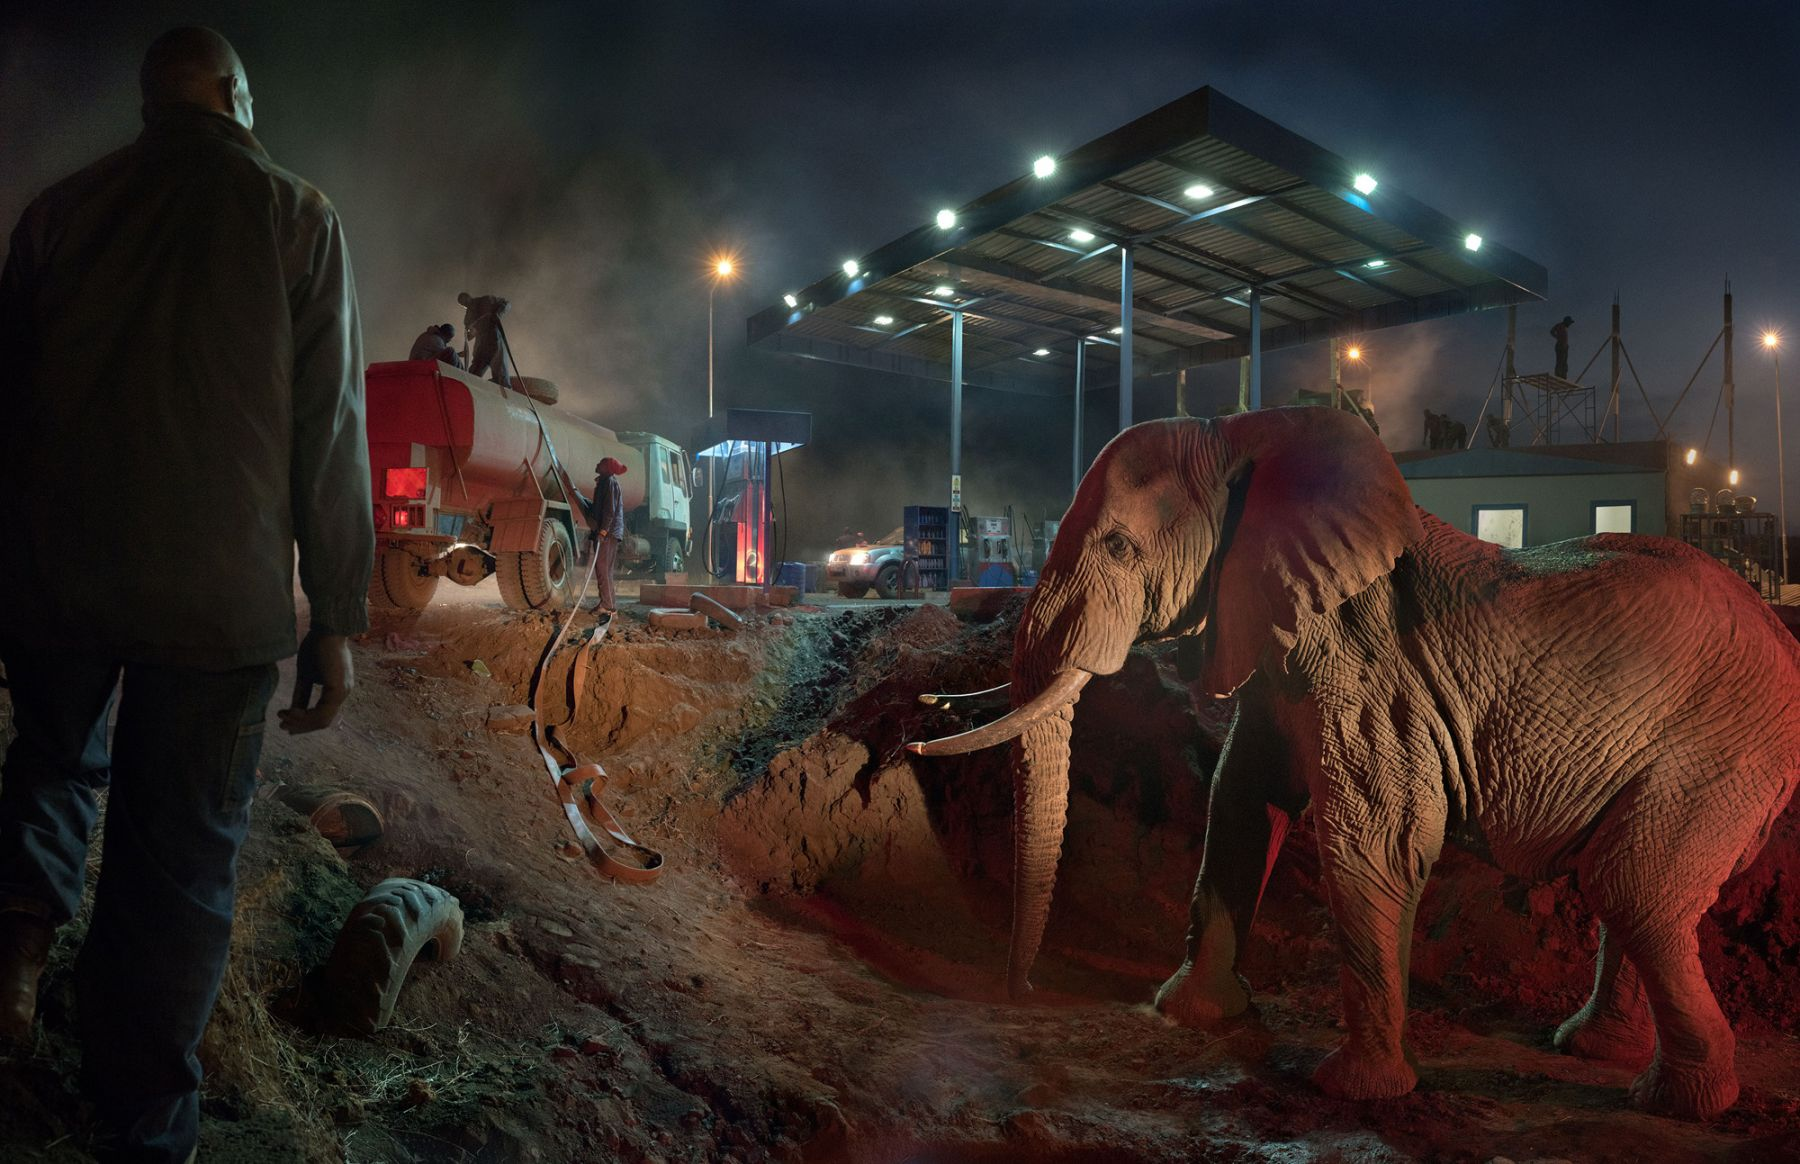 PETROL STATION WITH ELEPHANT & WATER TRUCK, 2018,